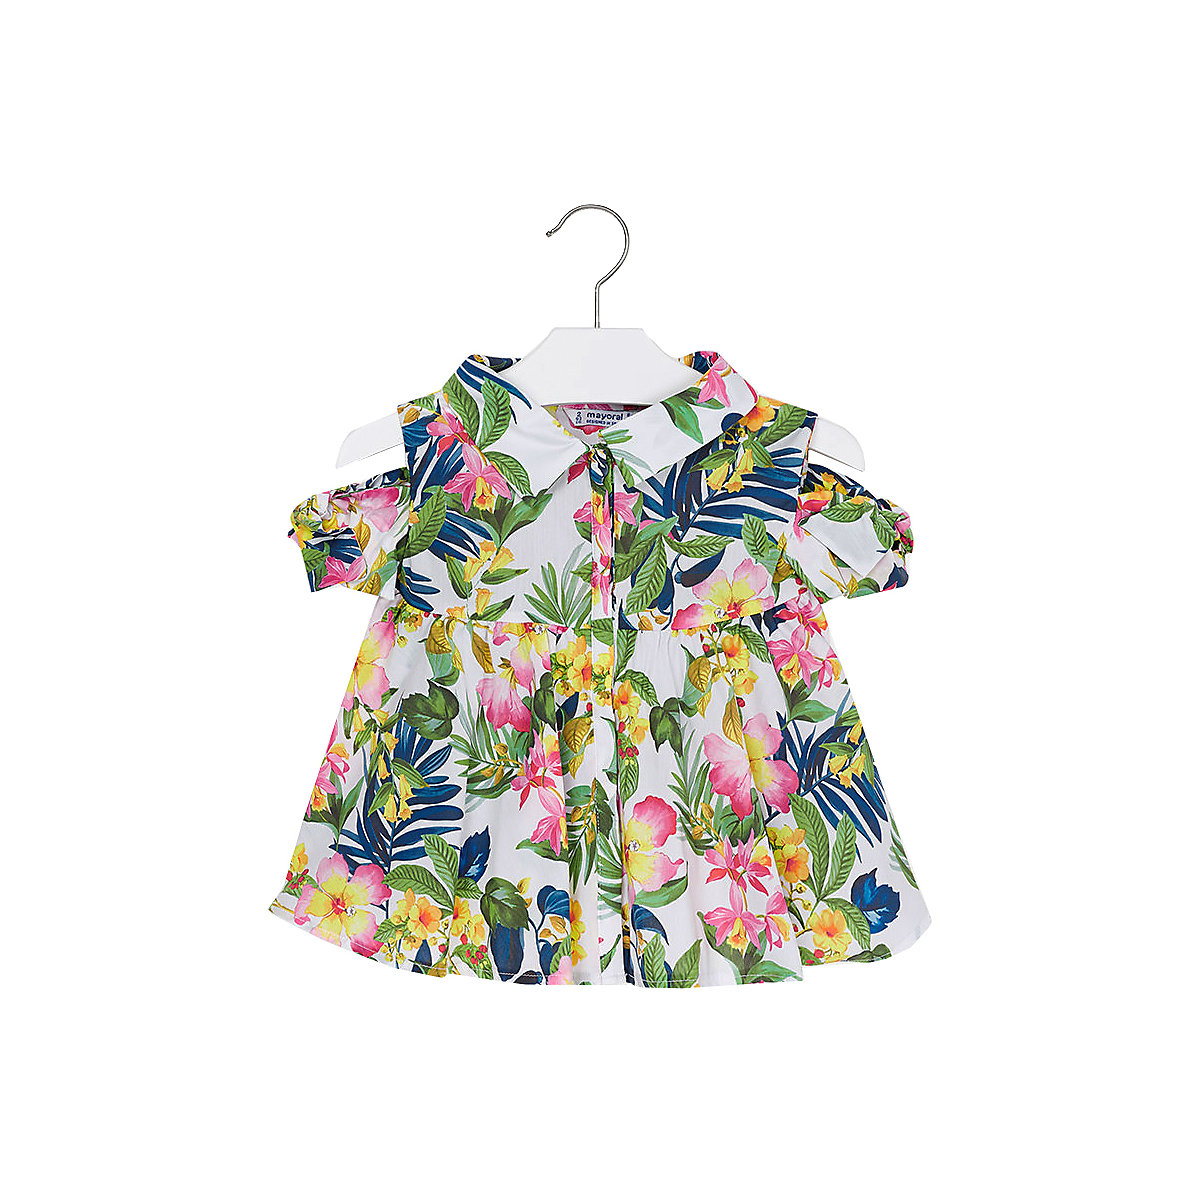 MAYORAL Blouses & Shirts 10678701 children clothing blouse for girls mayoral blouses